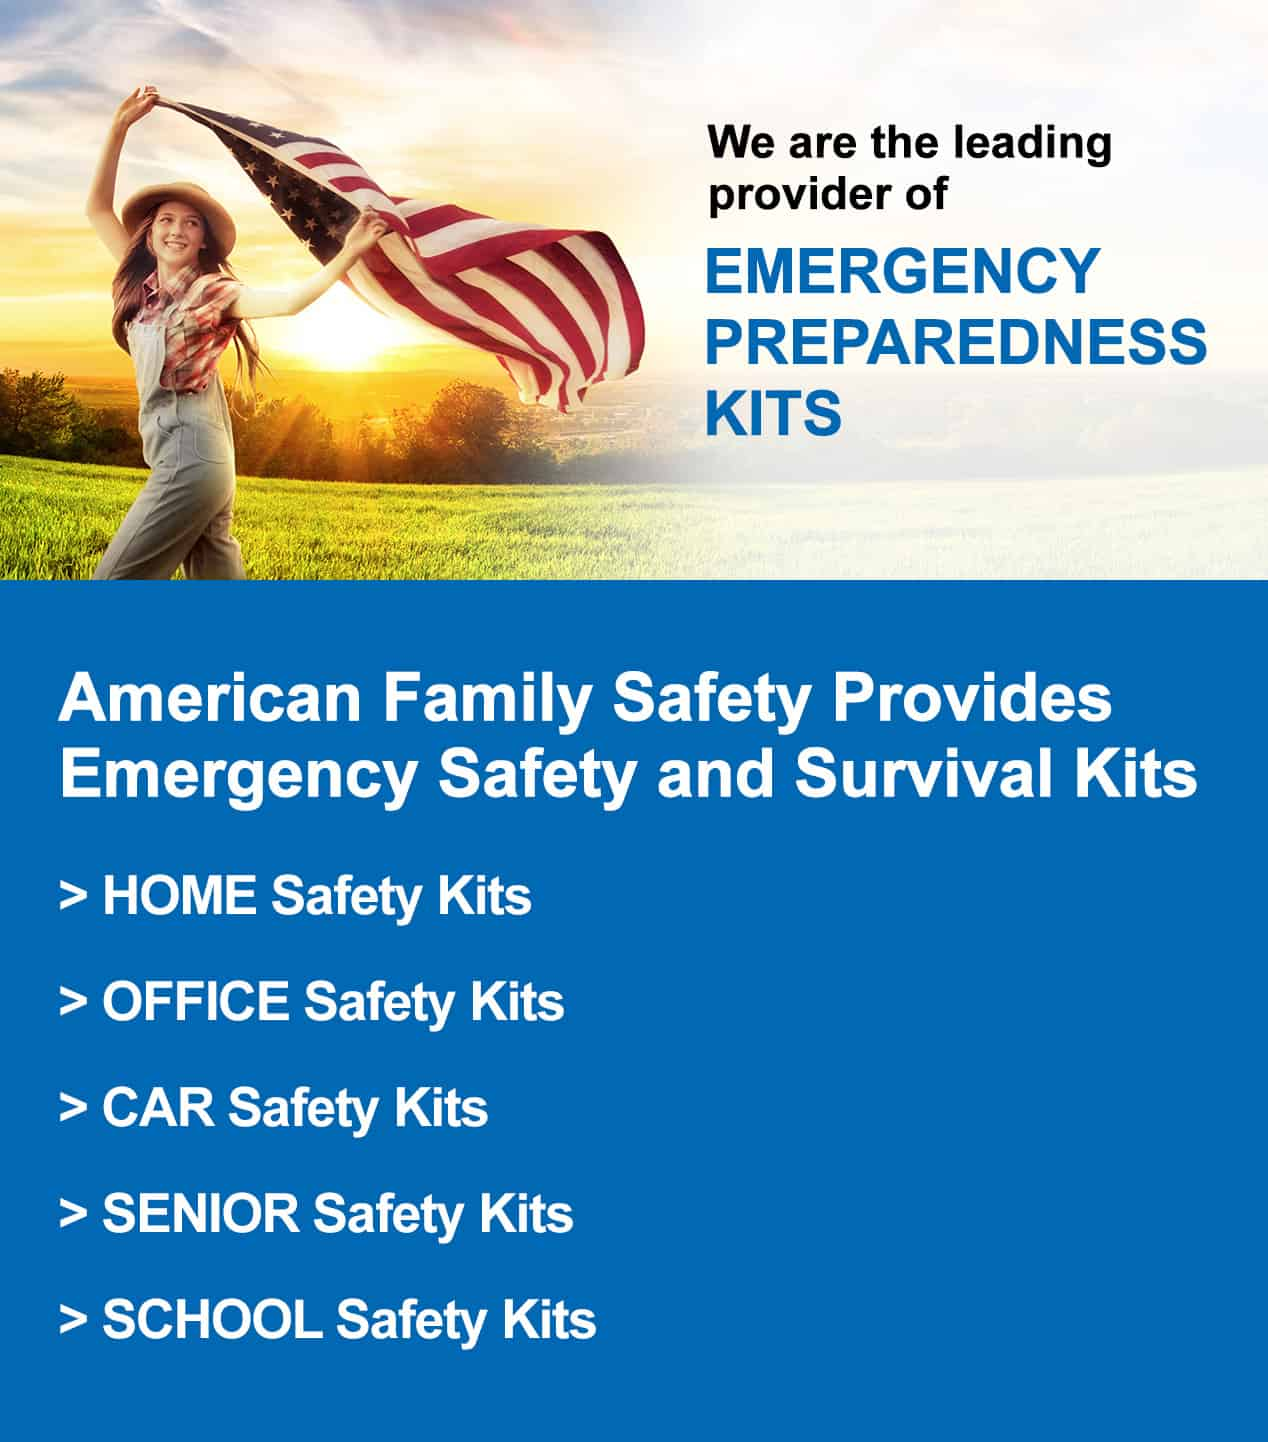 Leading provider of Emergency Safety and Survival Kits